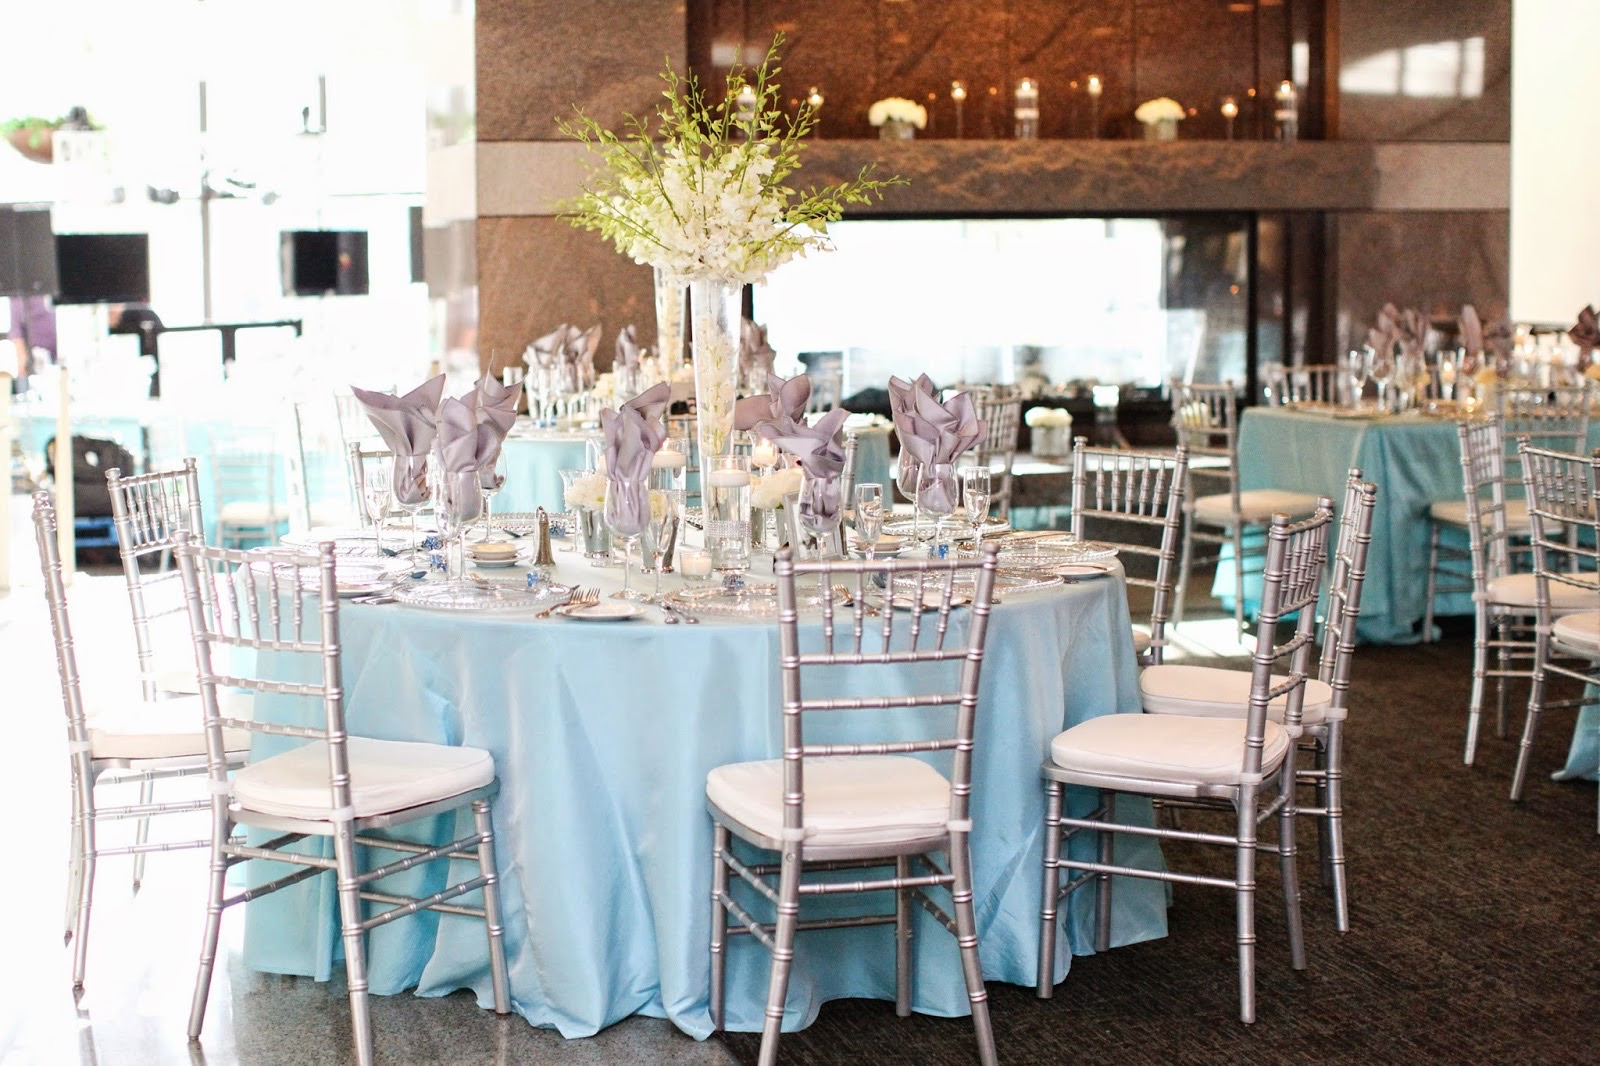 Round Table Wedding Decor With Tall Flower Centerpiece (Image 14 of 30)